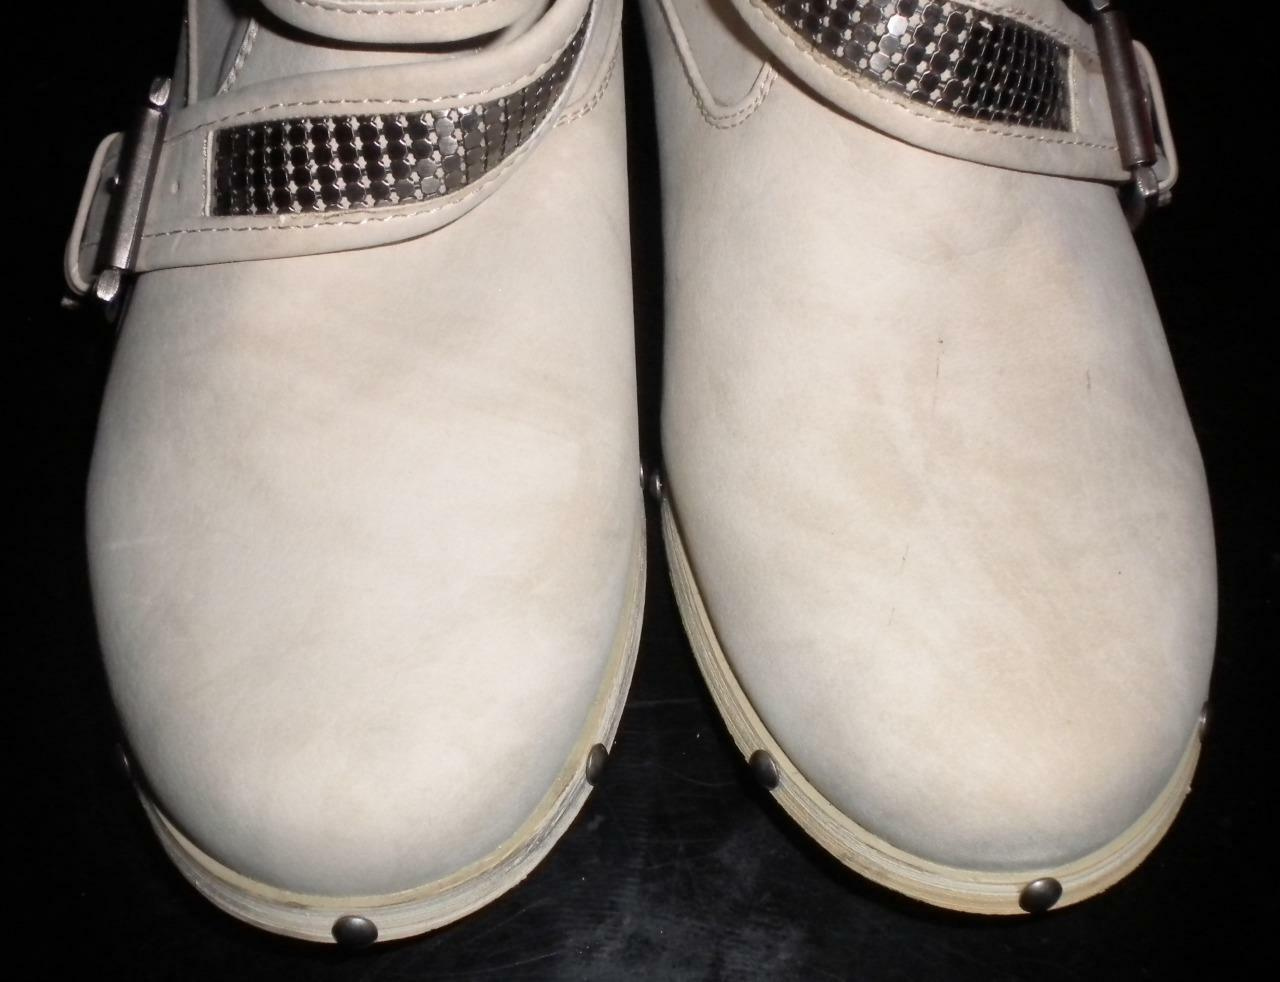 NOT RATED WOMEN'S SIZE 7 STRAPS M IVORY BUCKLES AND STRAPS 7 PULL-ON FASHION ANKLE BOOTS 872f91